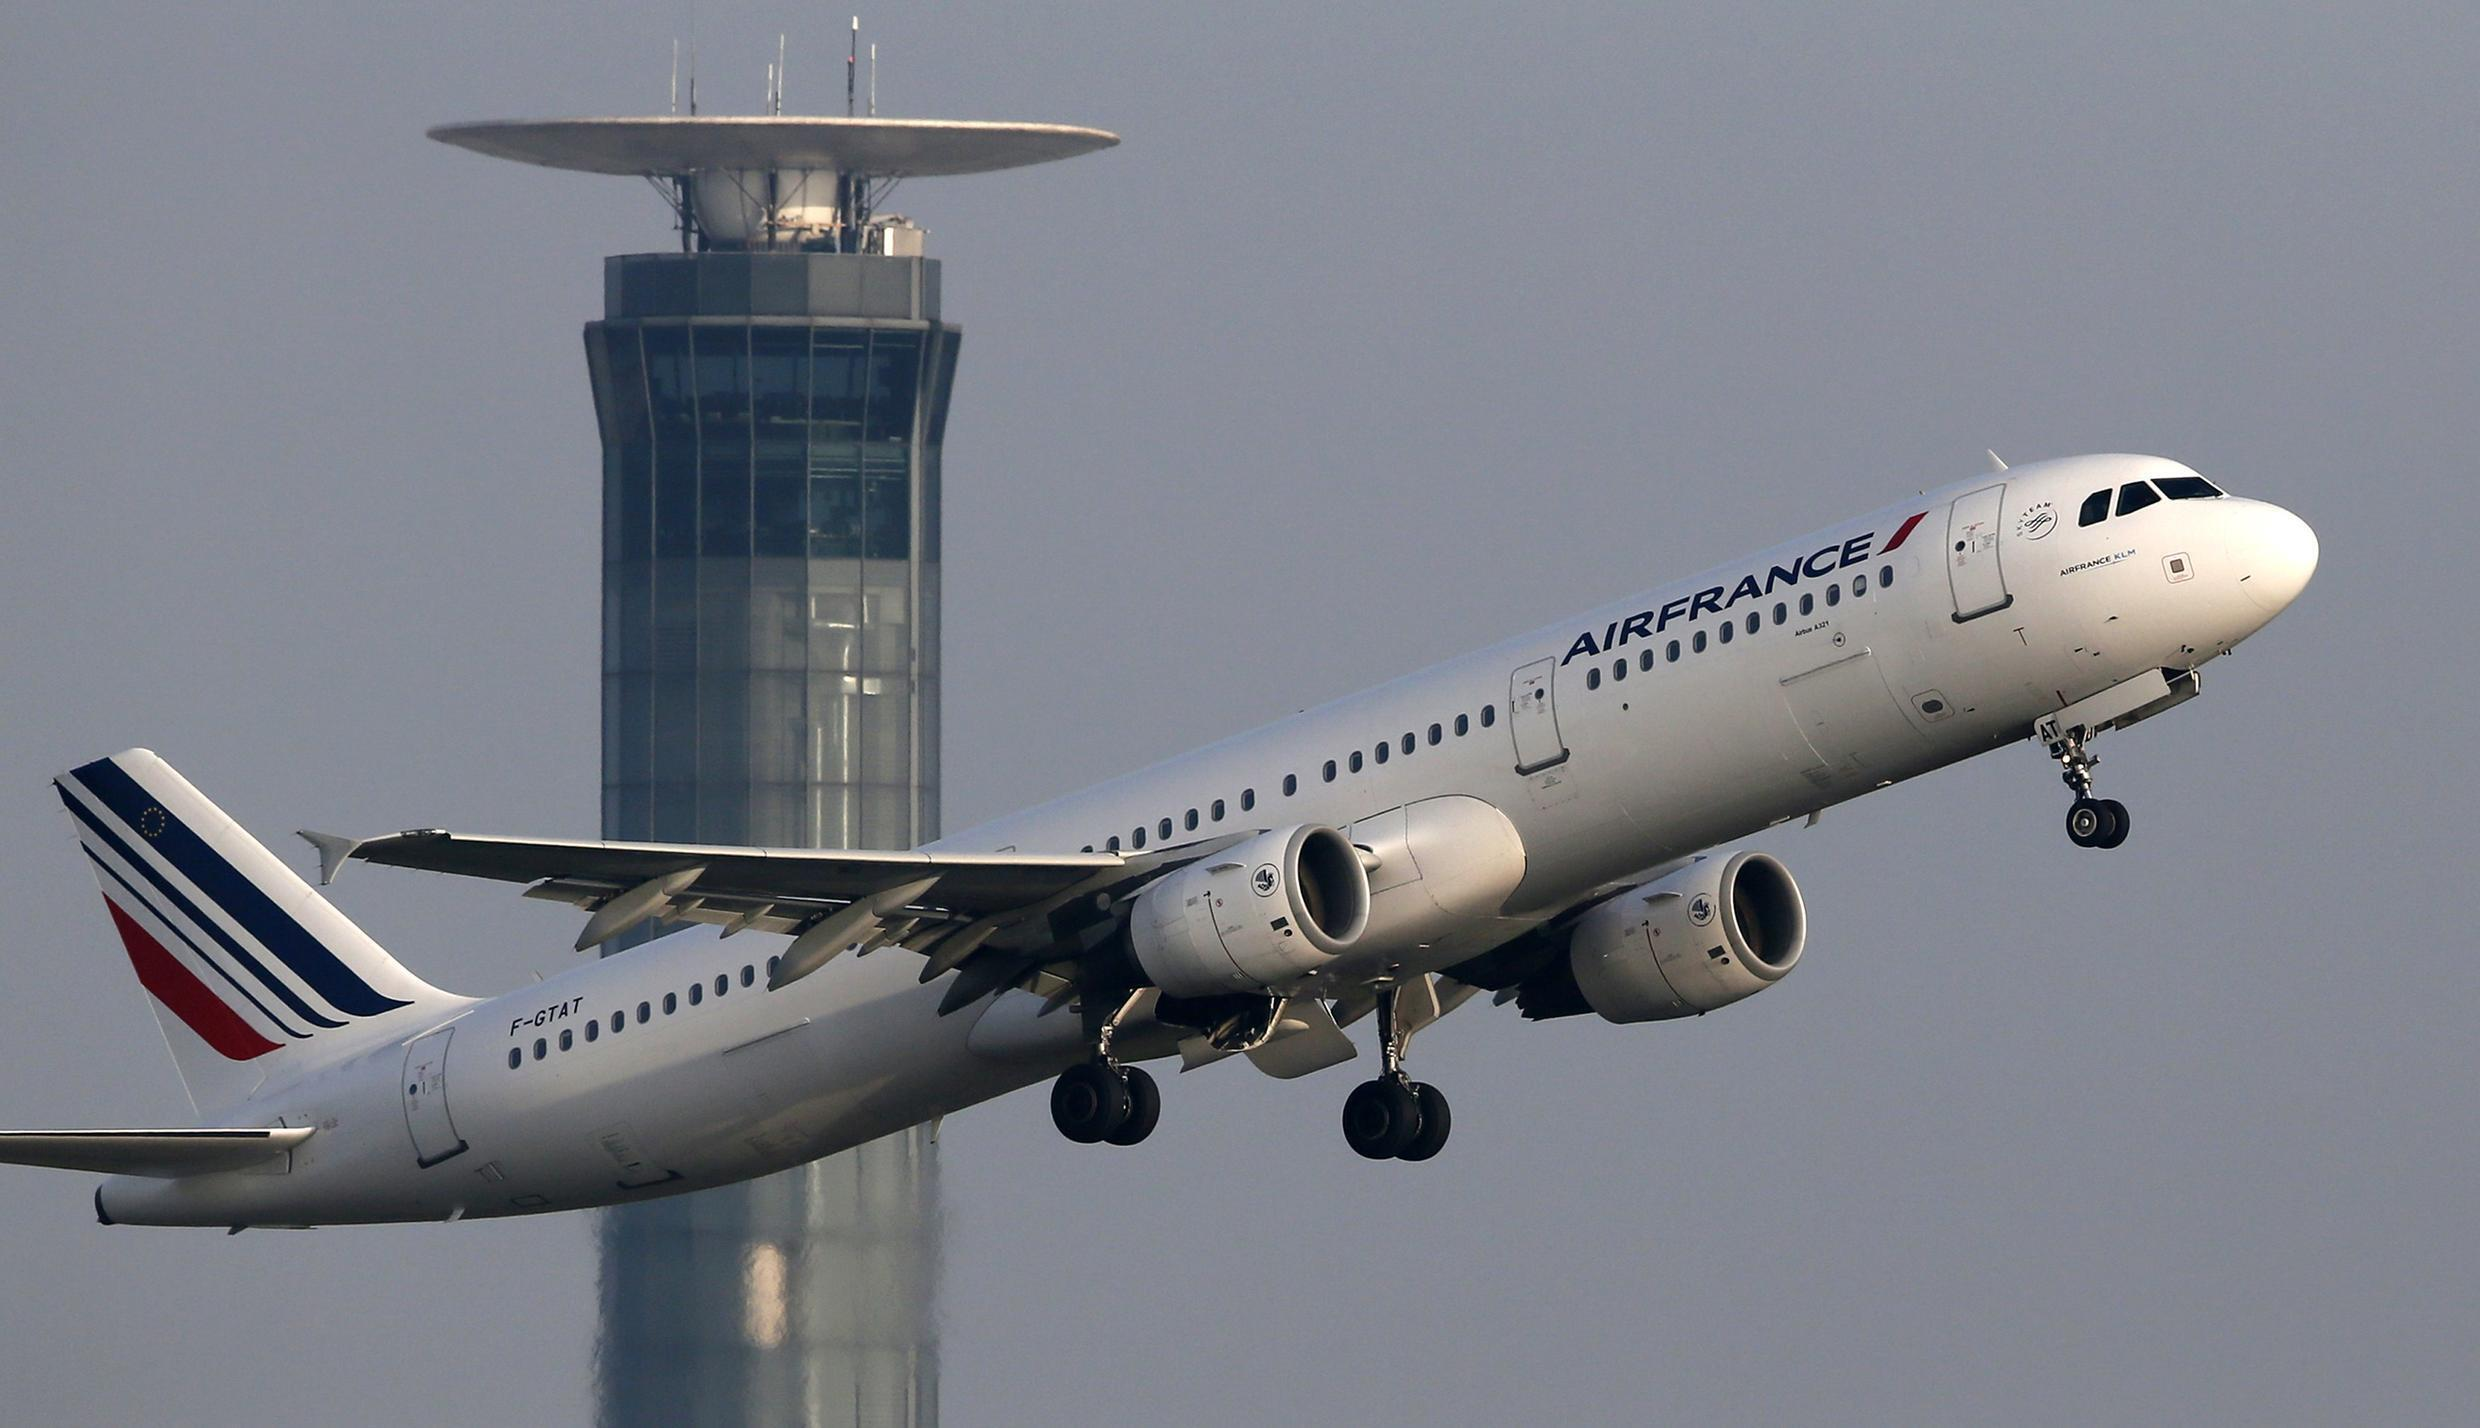 Air France cancelled 40 percent of medium-haul flights on April 8 due to an air traffic controllers' strike.